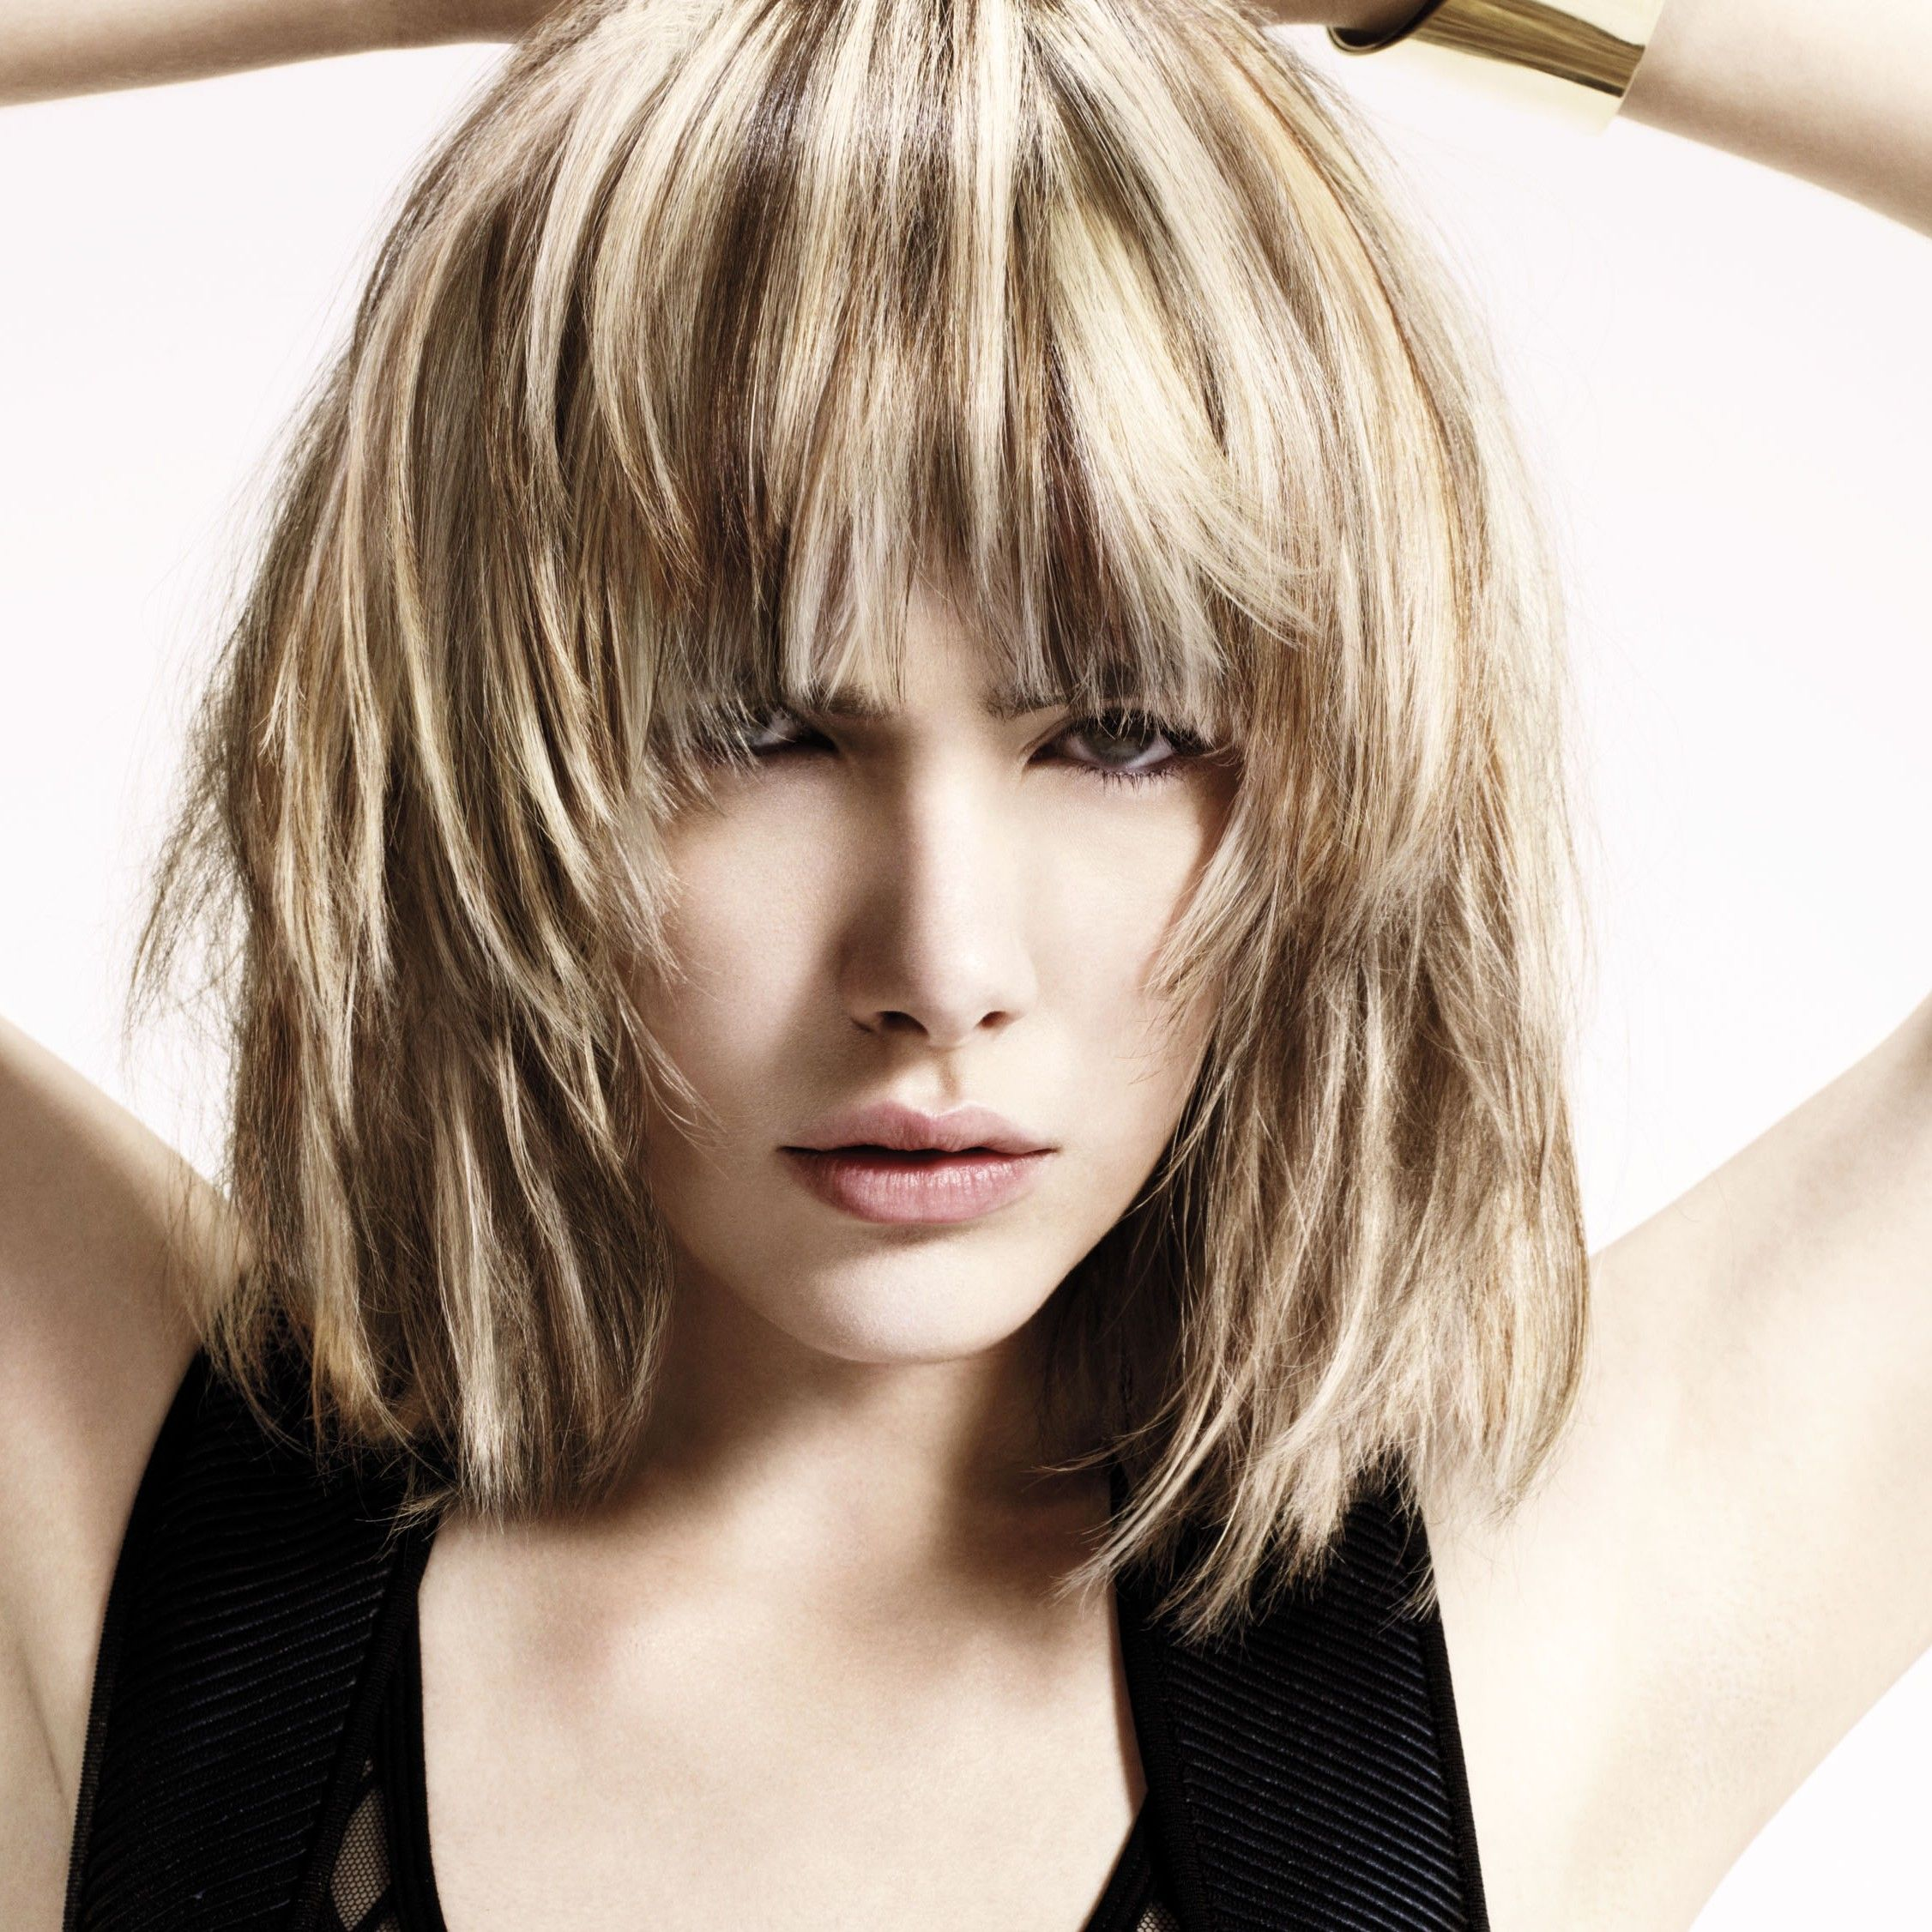 Platinumhairwithlowlights semipermanent hair color does not